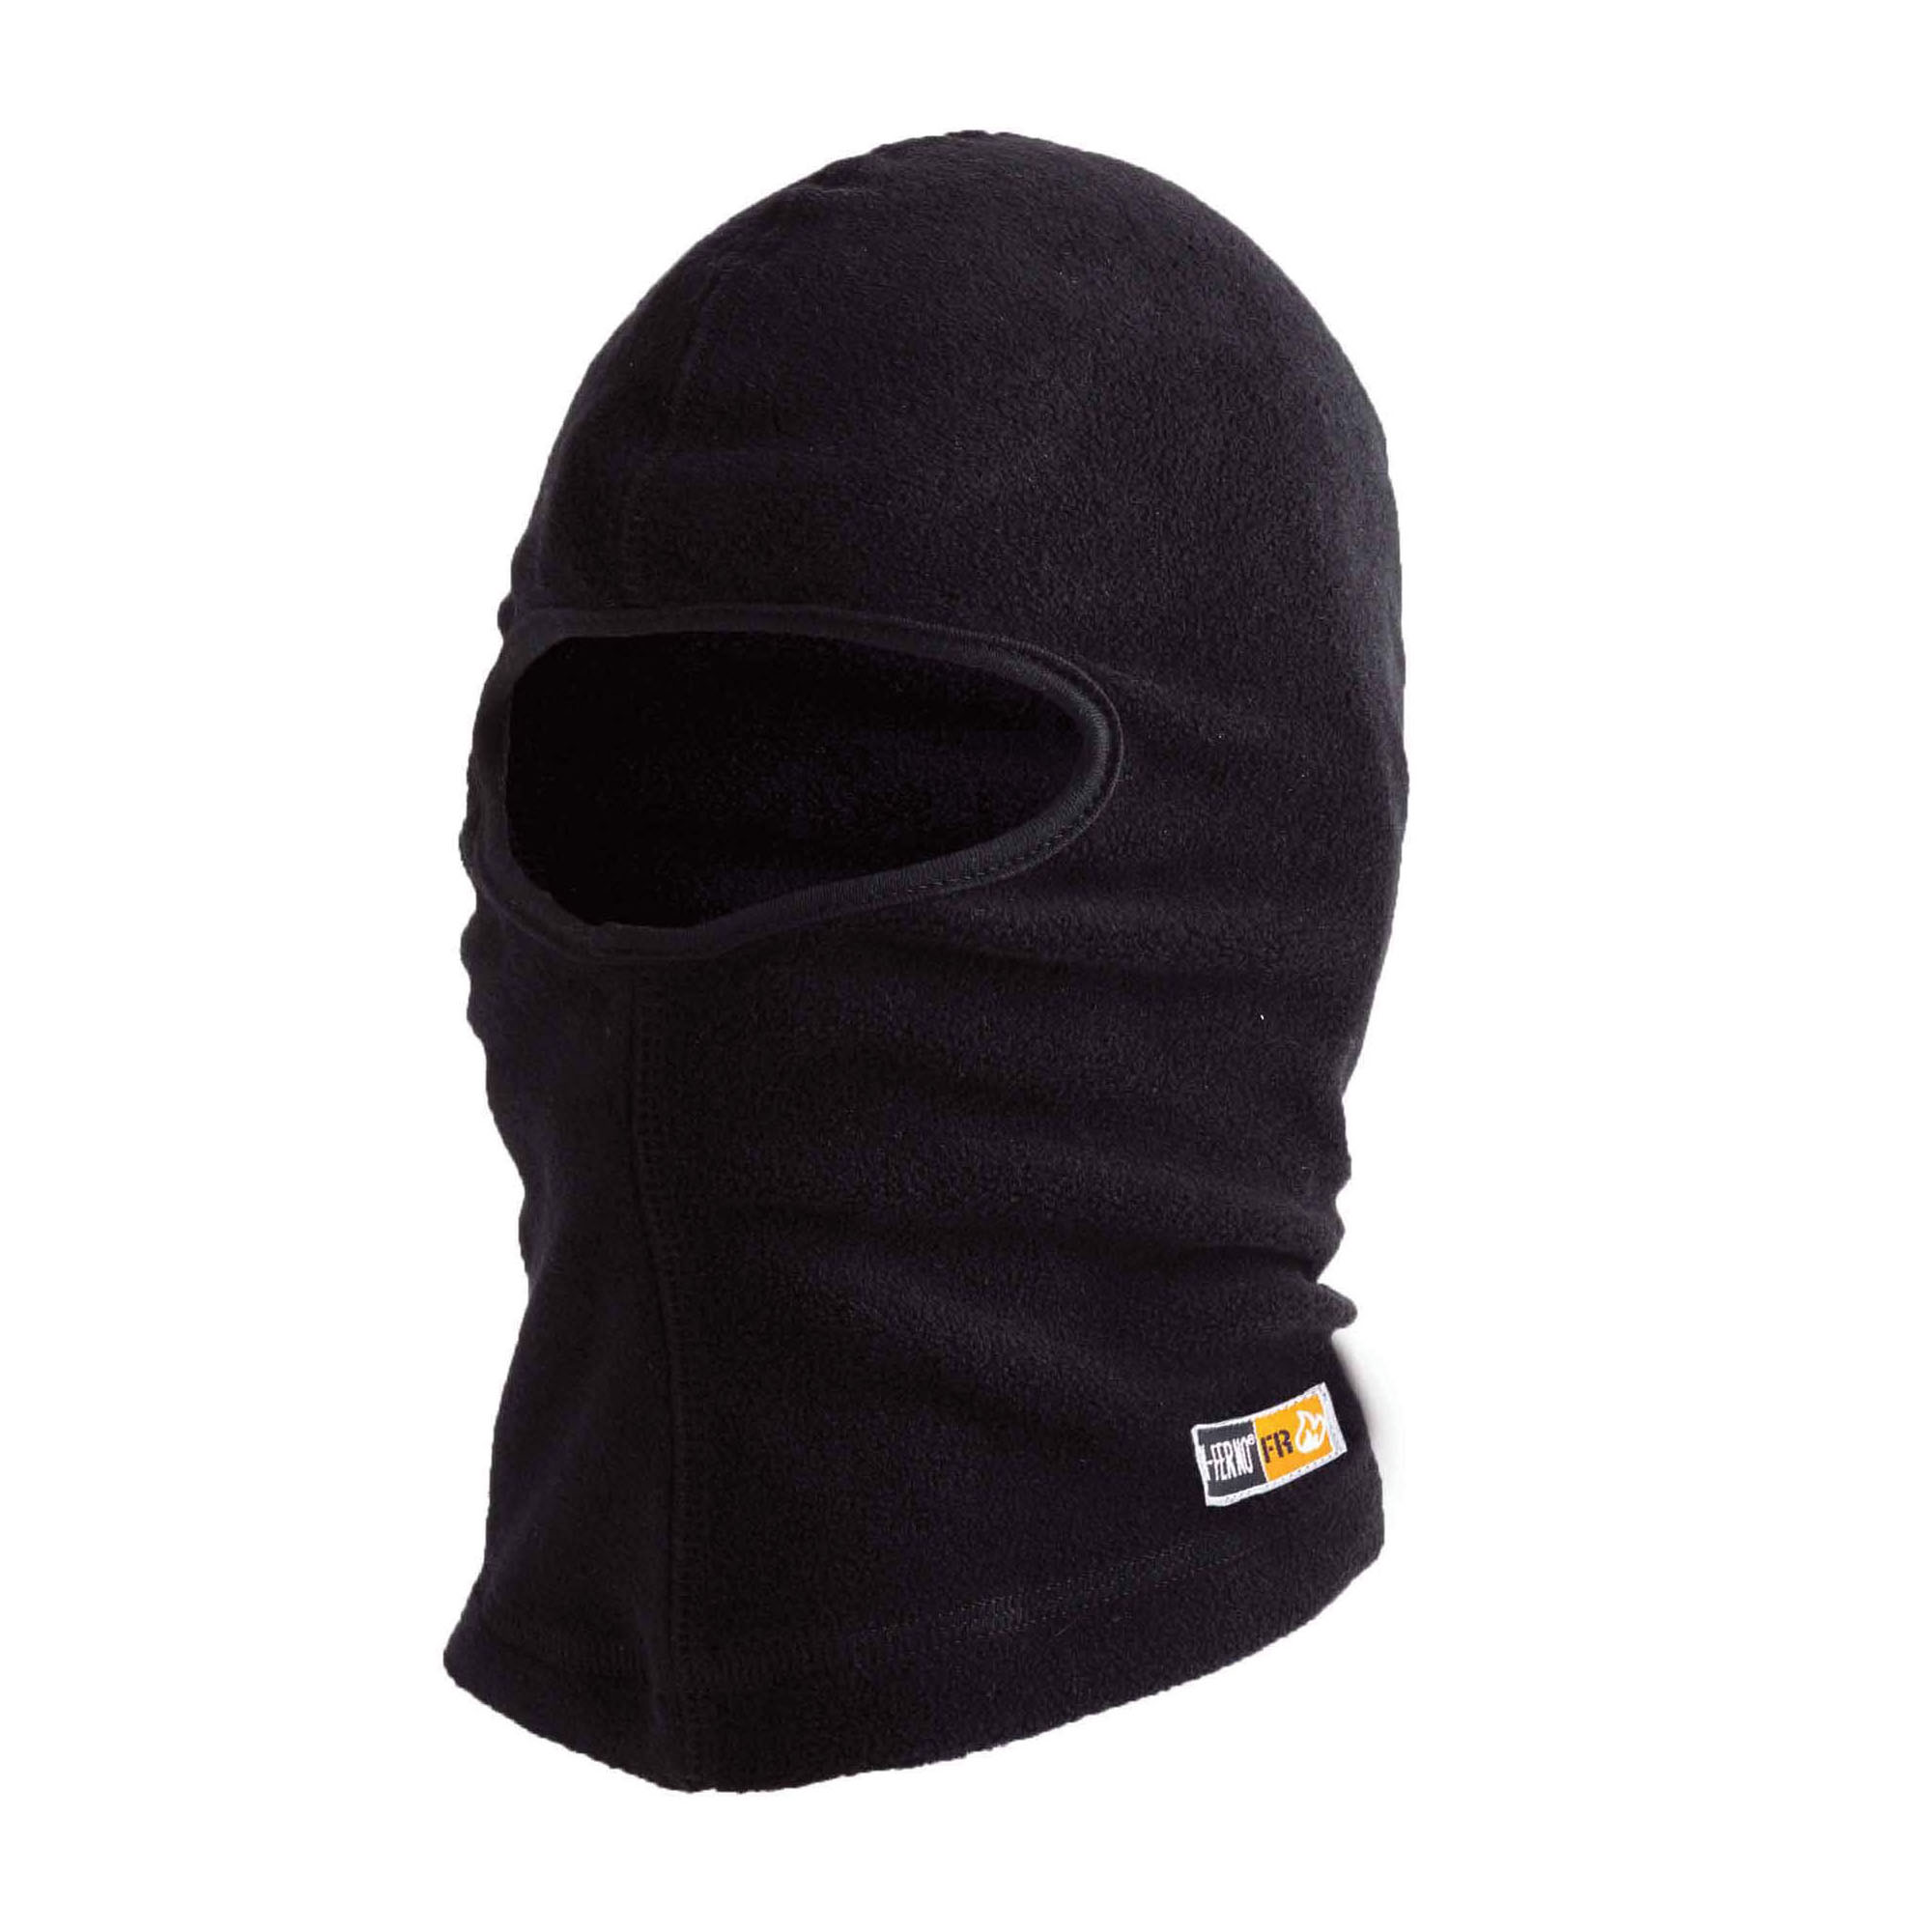 N-Ferno® 16822 Balaclava With Spandex Top, Black, Polyester